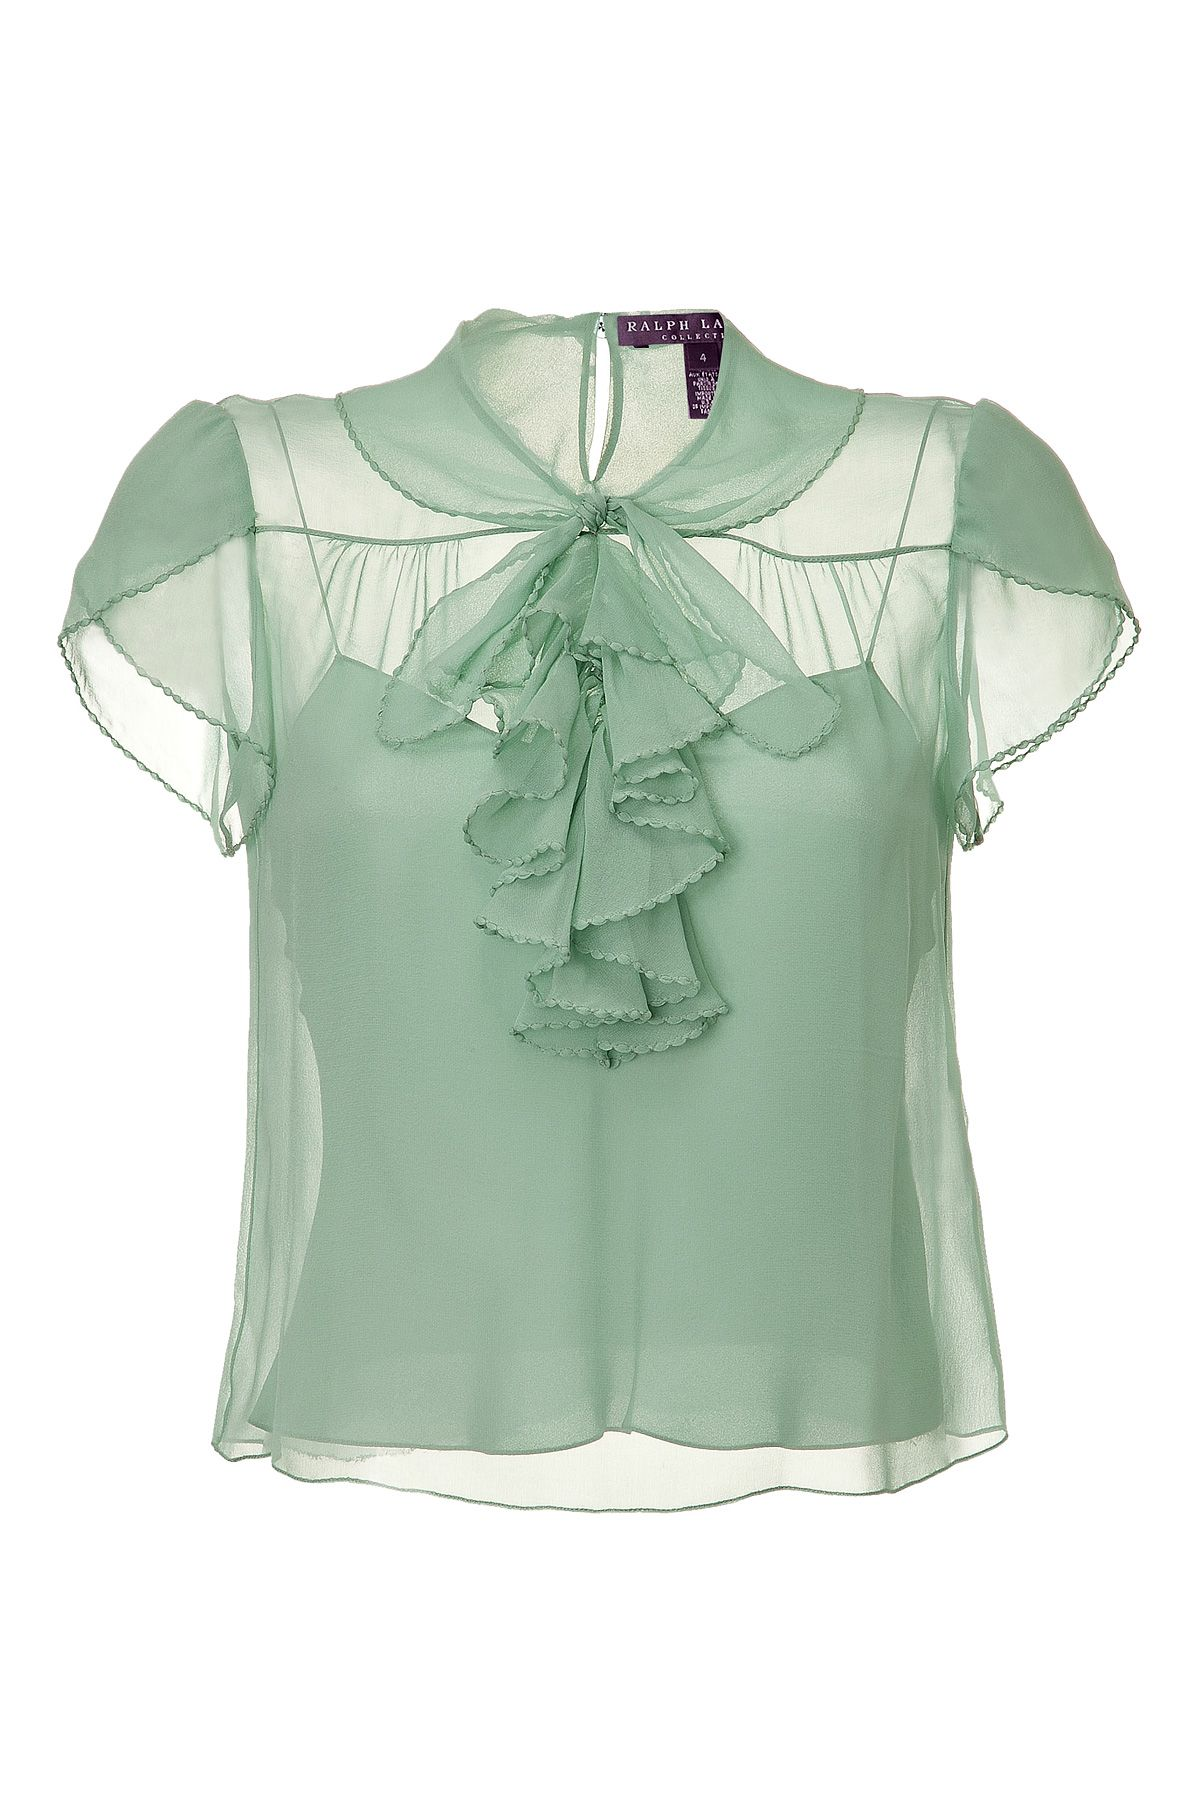 STYLEBOP.com. Pale Seafoam Single Georgette Dapne Top by RALPH LAUREN COLLECTION